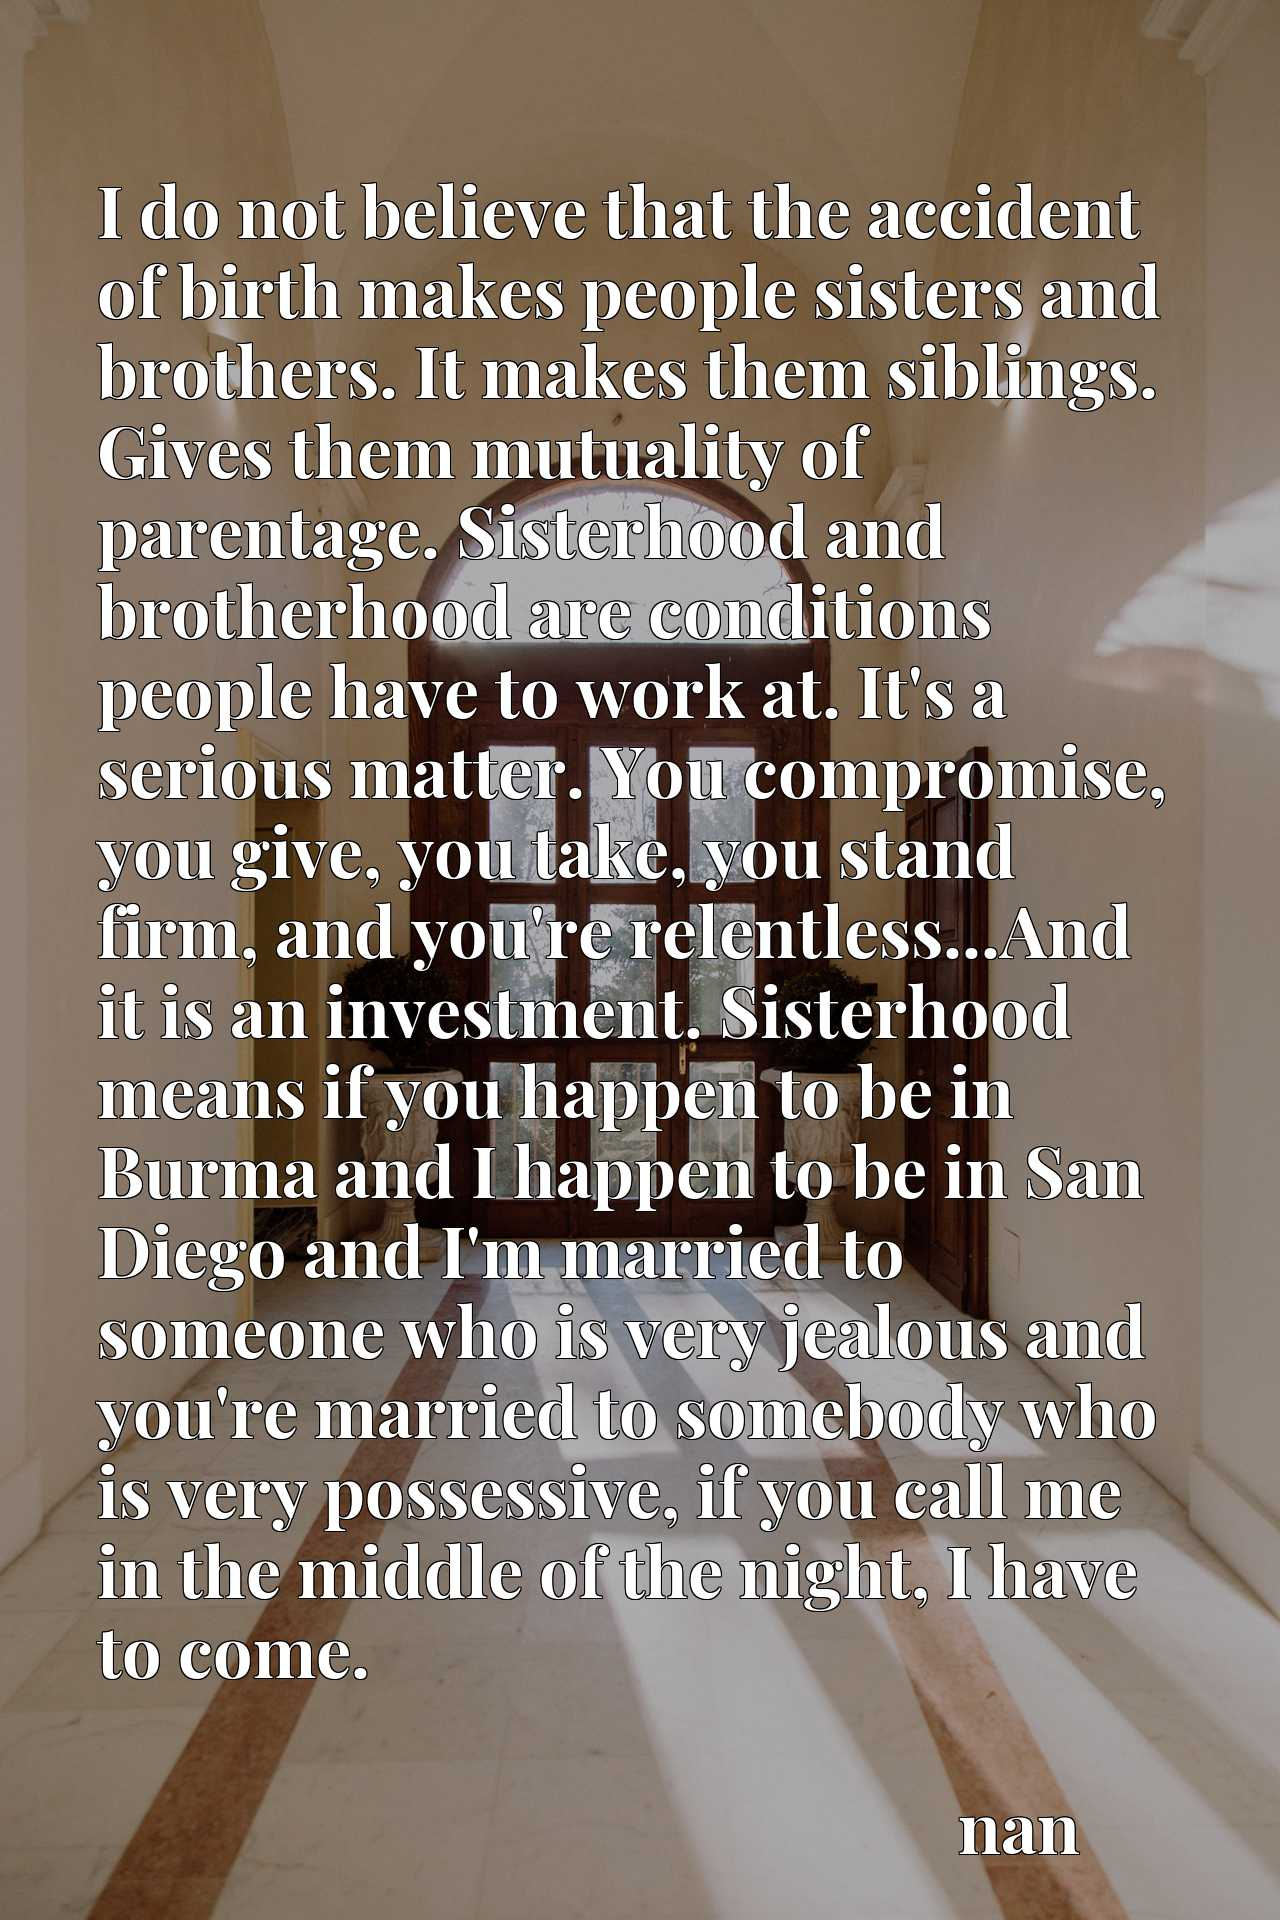 I do not believe that the accident of birth makes people sisters and brothers. It makes them siblings. Gives them mutuality of parentage. Sisterhood and brotherhood are conditions people have to work at. It's a serious matter. You compromise, you give, you take, you stand firm, and you're relentless...And it is an investment. Sisterhood means if you happen to be in Burma and I happen to be in San Diego and I'm married to someone who is very jealous and you're married to somebody who is very possessive, if you call me in the middle of the night, I have to come.